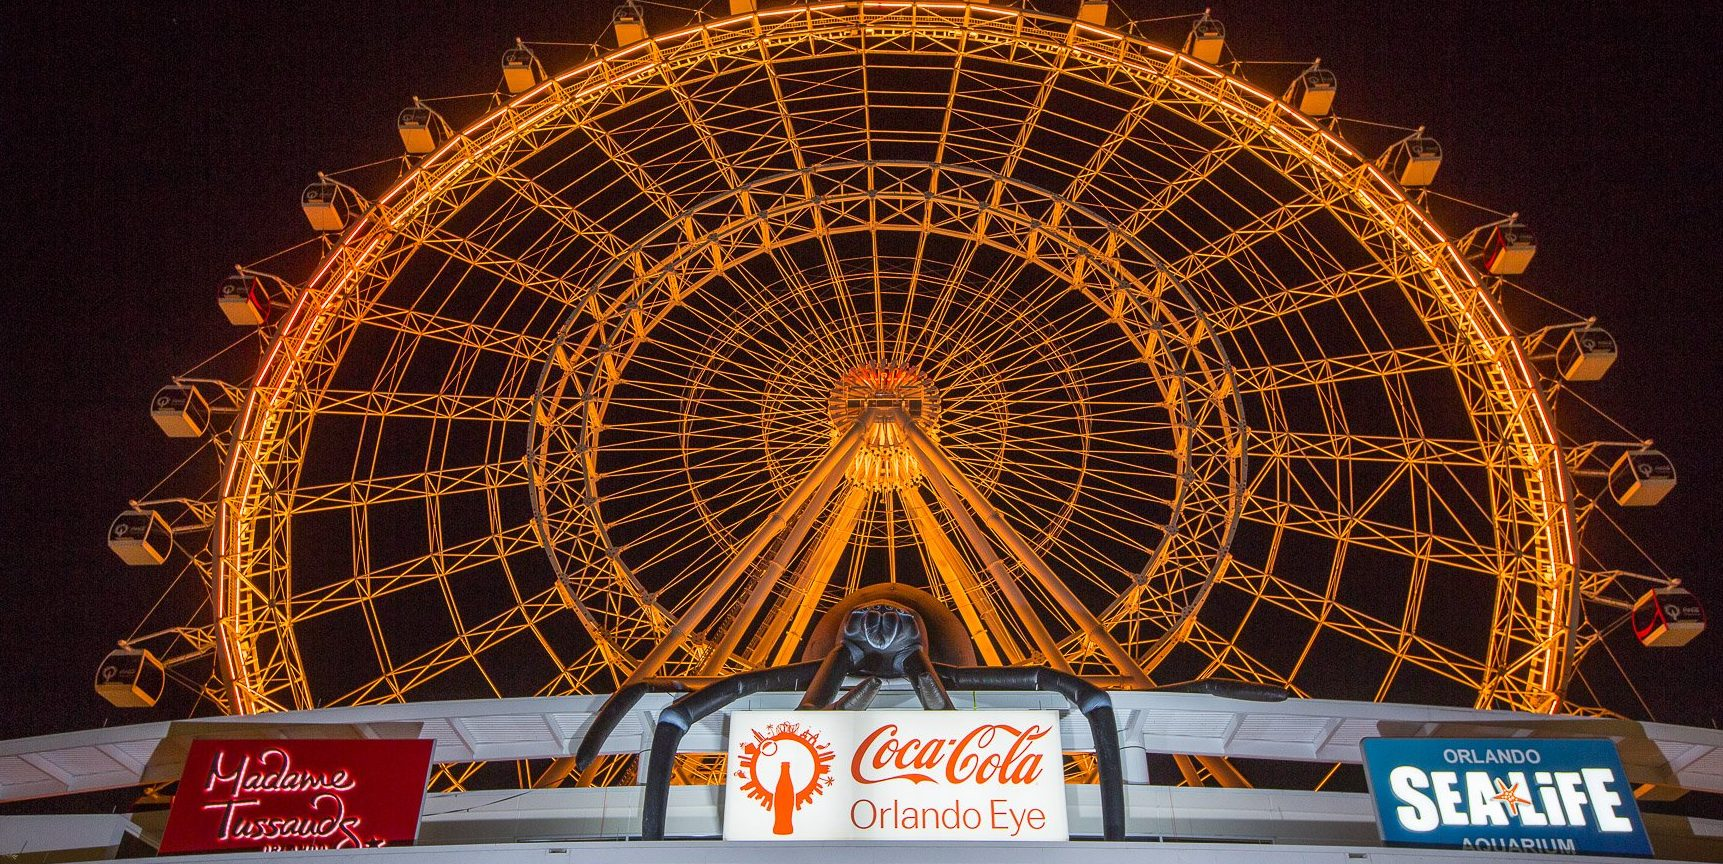 Geek in Orlando: Top 5 Reasons to Visit the Orlando Eye Attraction